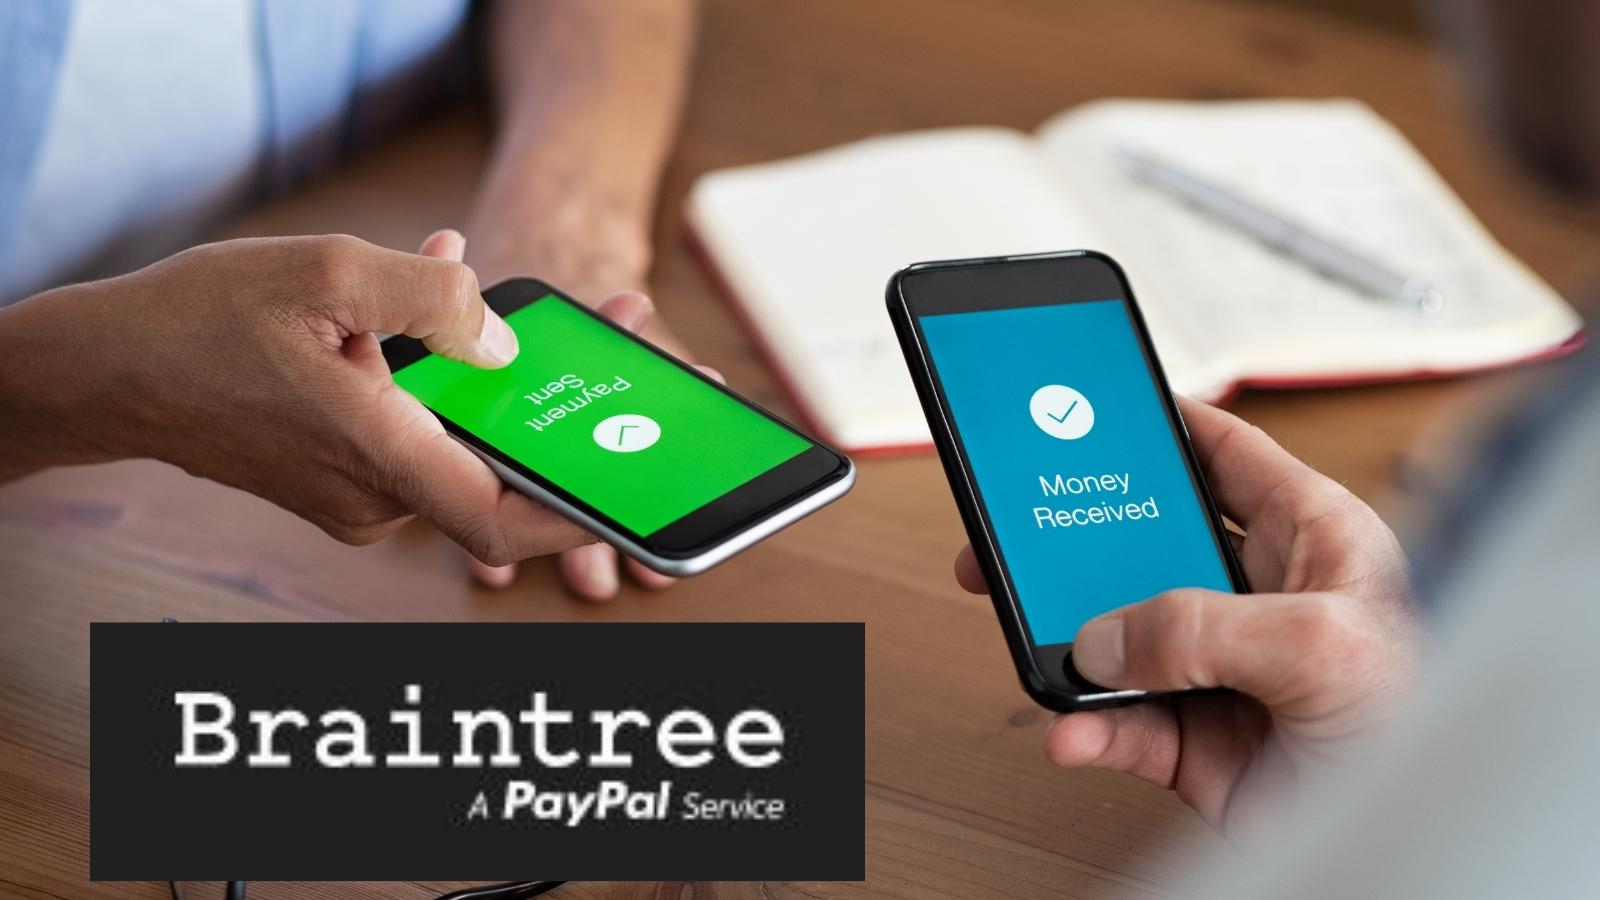 braintree one of many payment processors to choose from